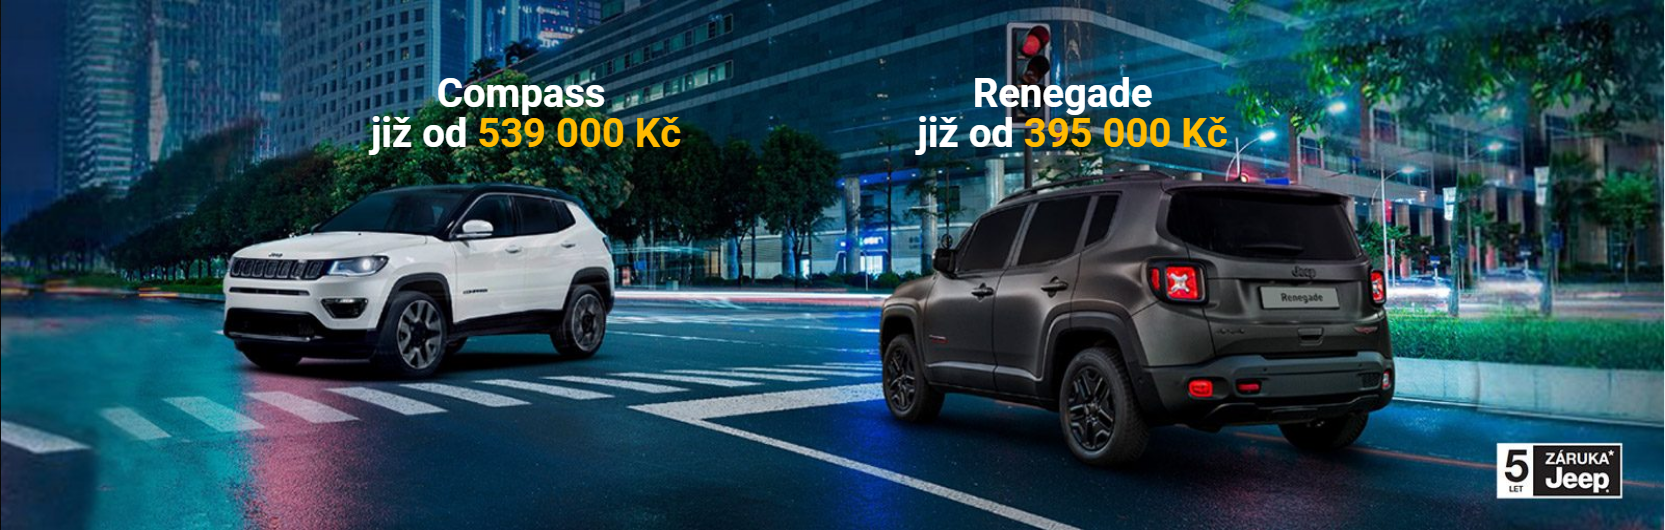 /images/mod_InteractiveBanner/img/80_1_1_2_jeep-compass-renegade-akcni-cena-3q.png